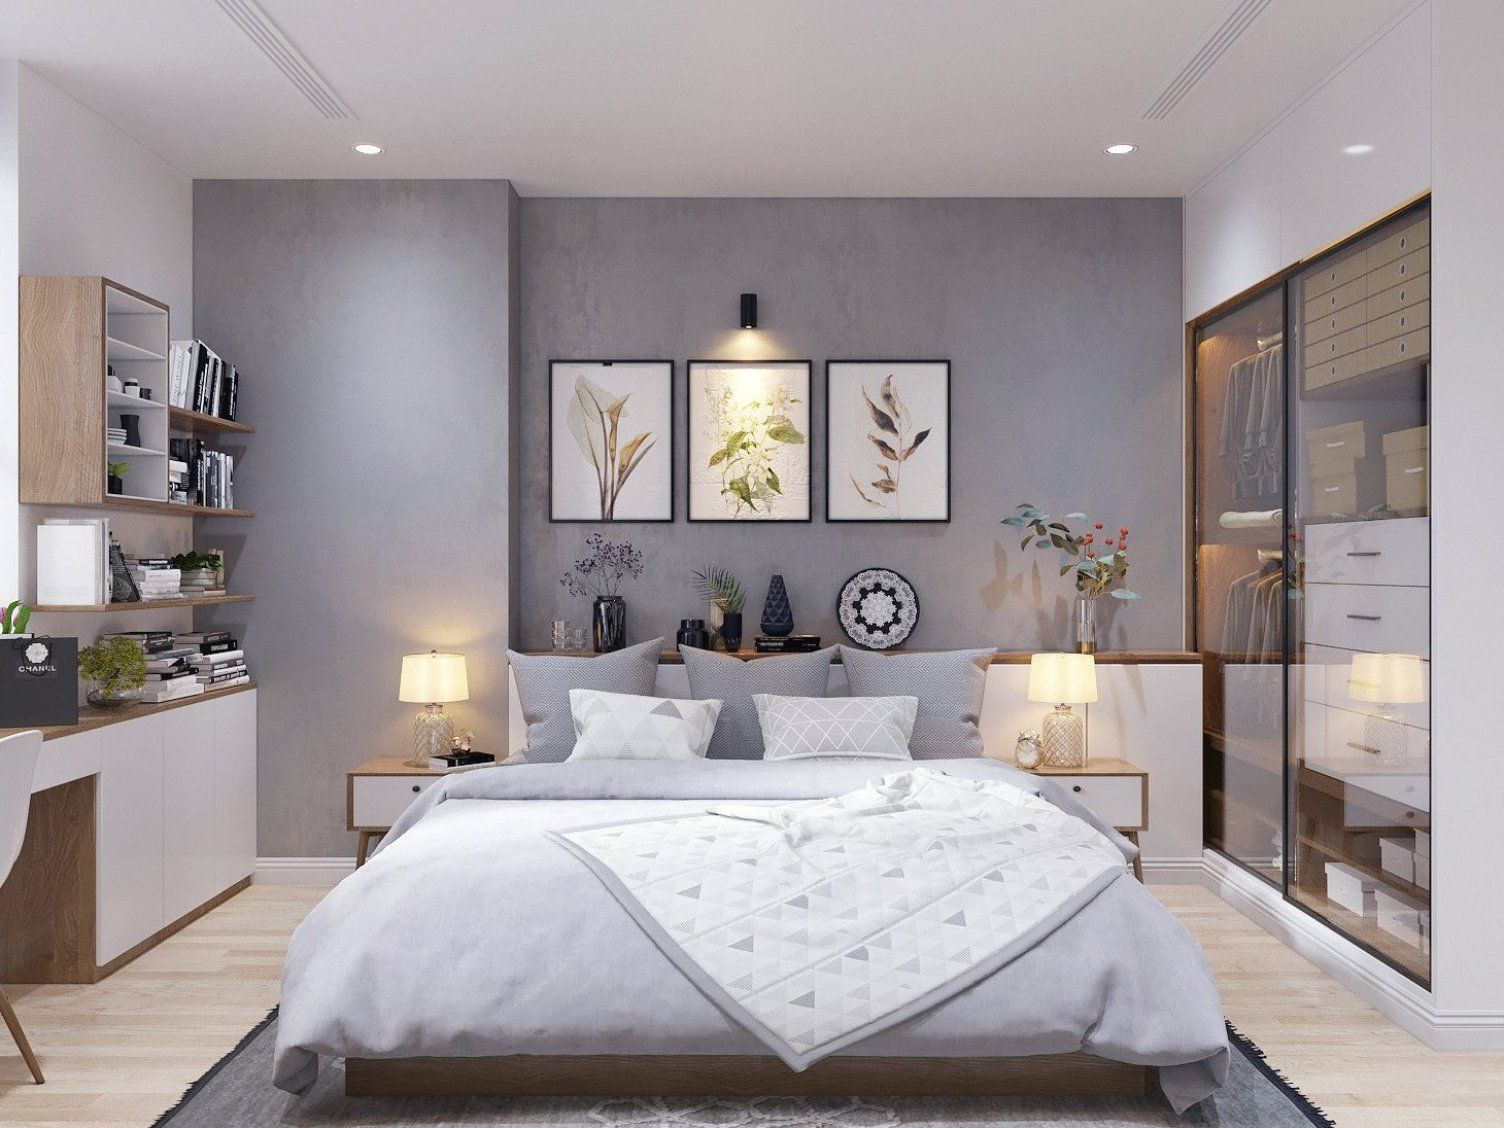 Modern Scandinavian Style Home Design For Young Families Awesome Decoration Suggestions For Swee In 2020 Bedroom Design Trends Master Bedroom Design Bedroom Trends